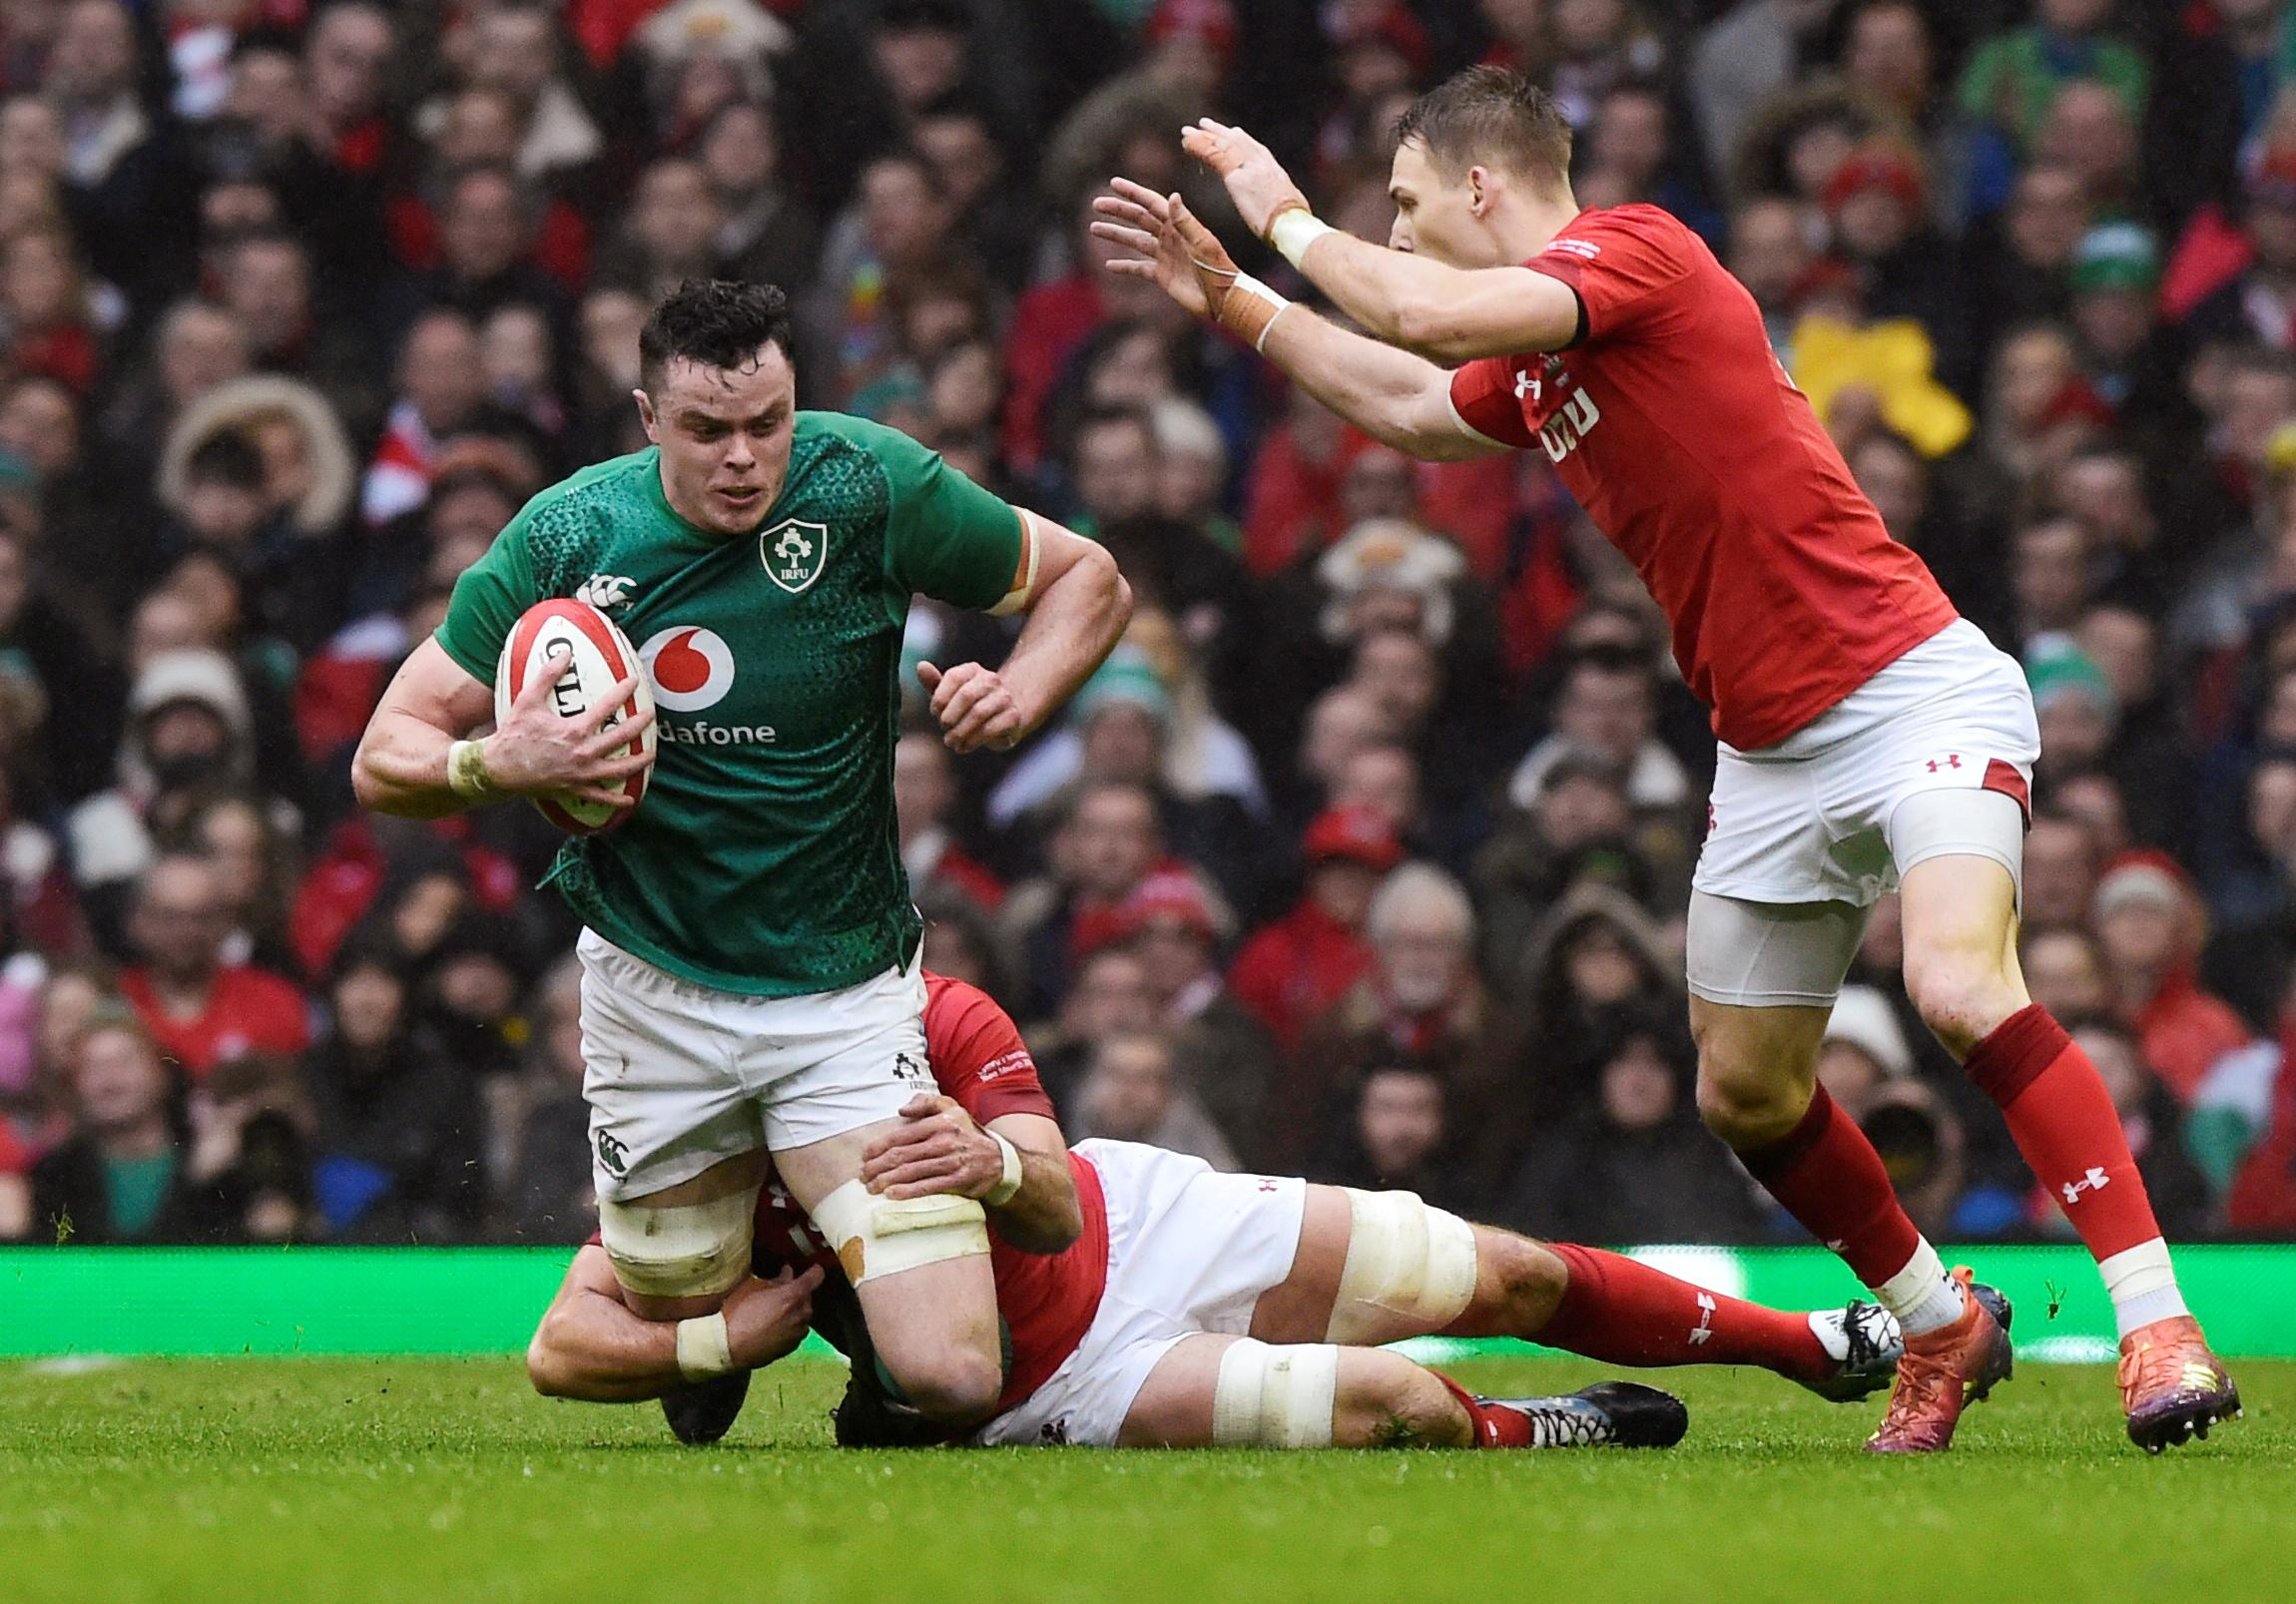 Ireland's Ryan poised to make another statement at next level